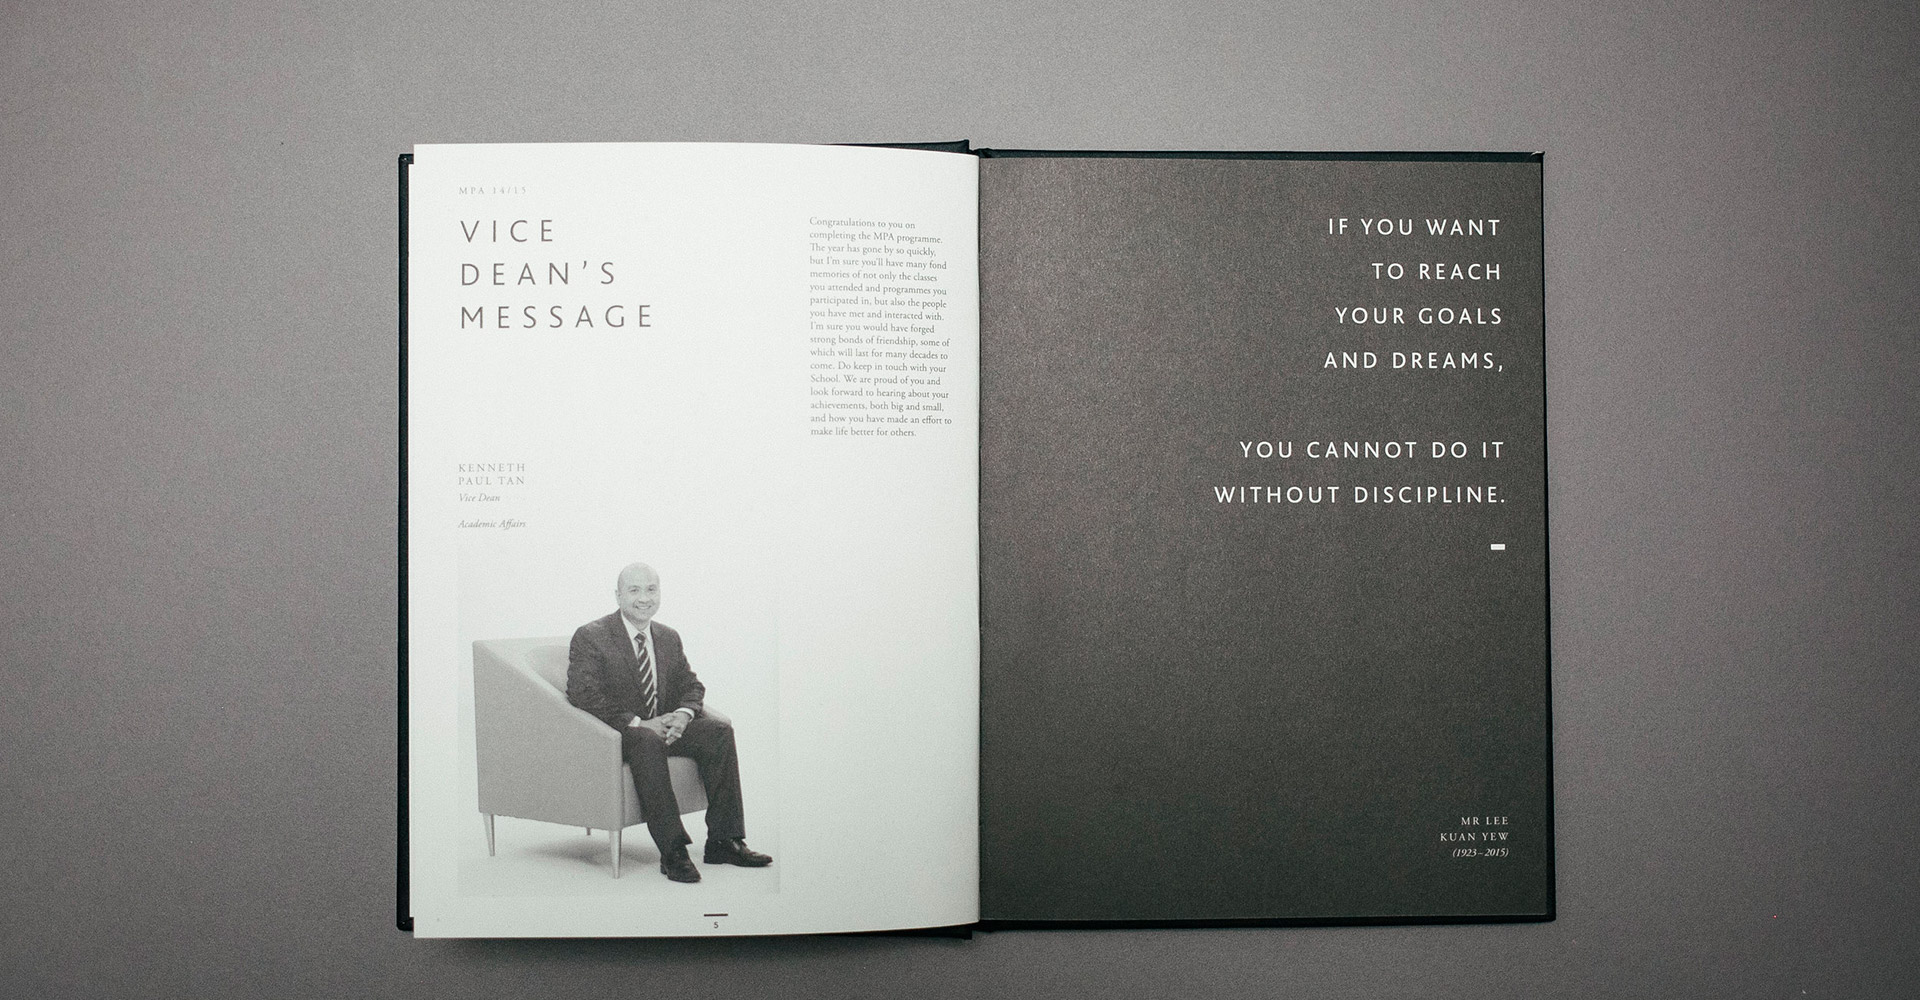 lky-vd-message